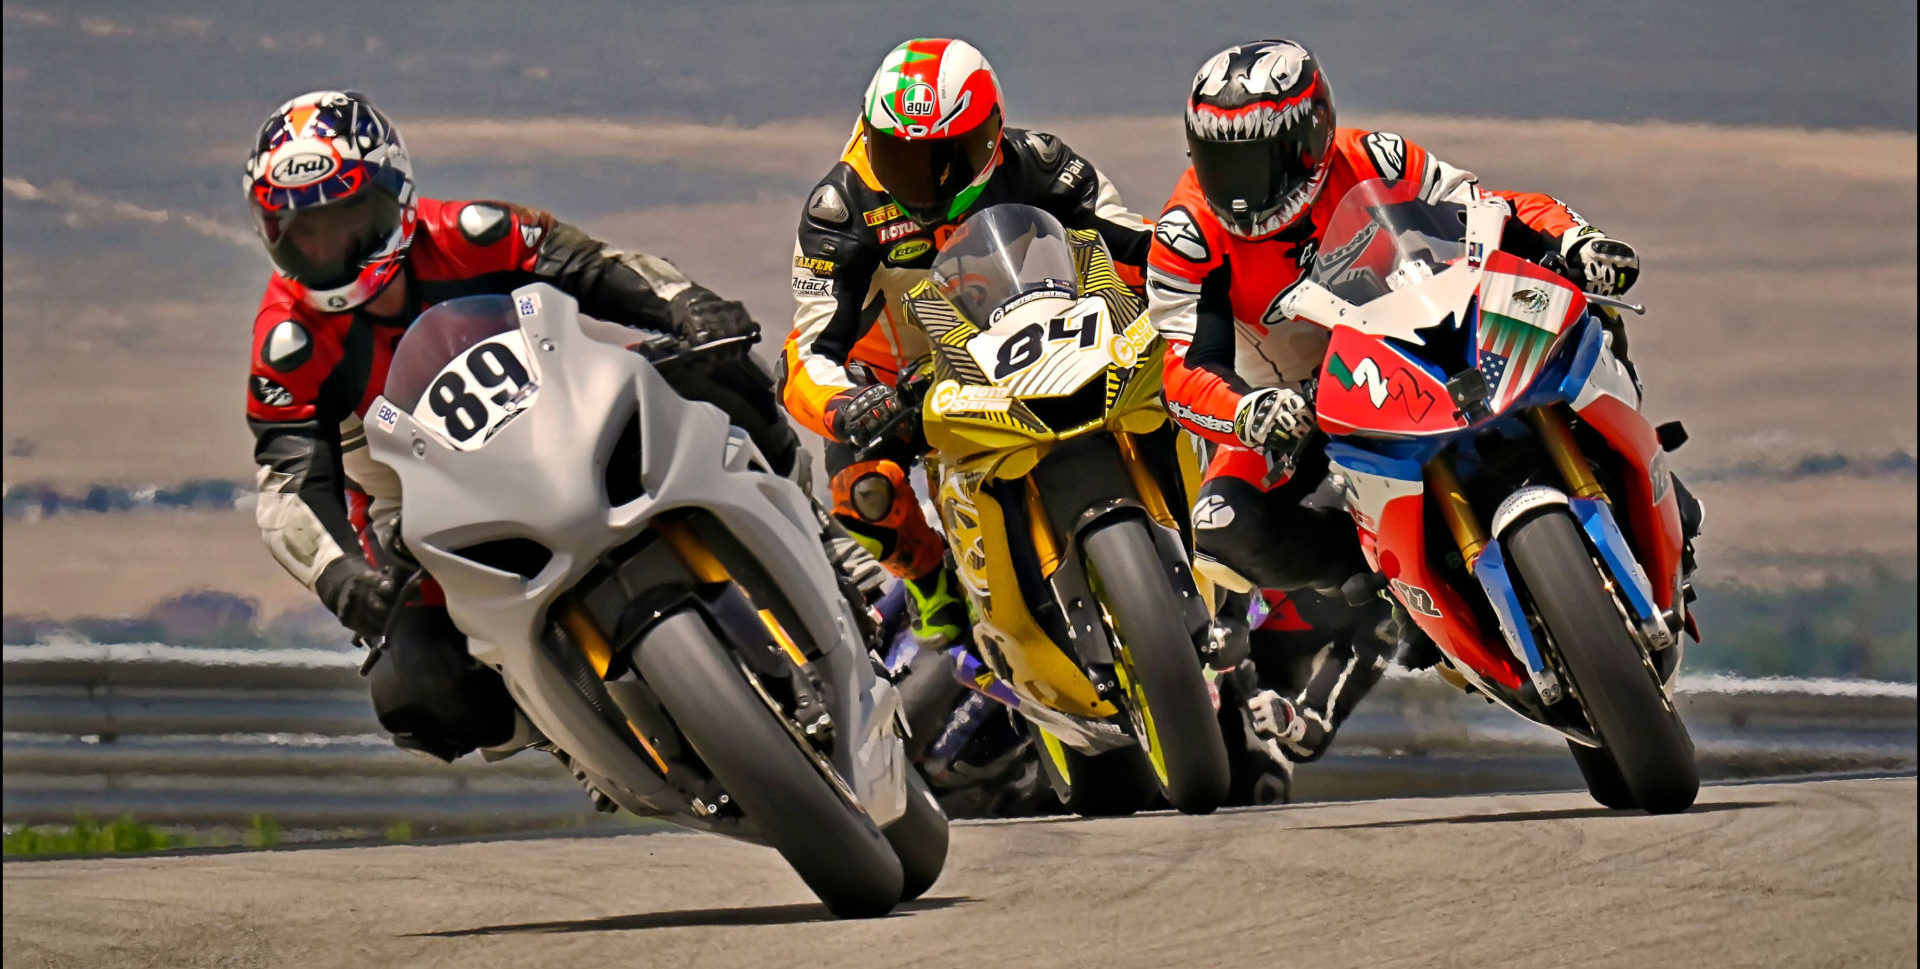 Adam Robarts (89) leads ahead of Kory Cowan (84) and Genaro Lopez (122) on the first lap of the Utah Motorcycle Law Master's of the Mountains Race June 20 at Utah Motorsports Campus. Photo by Steve Midgley, courtesy UtahSBA.